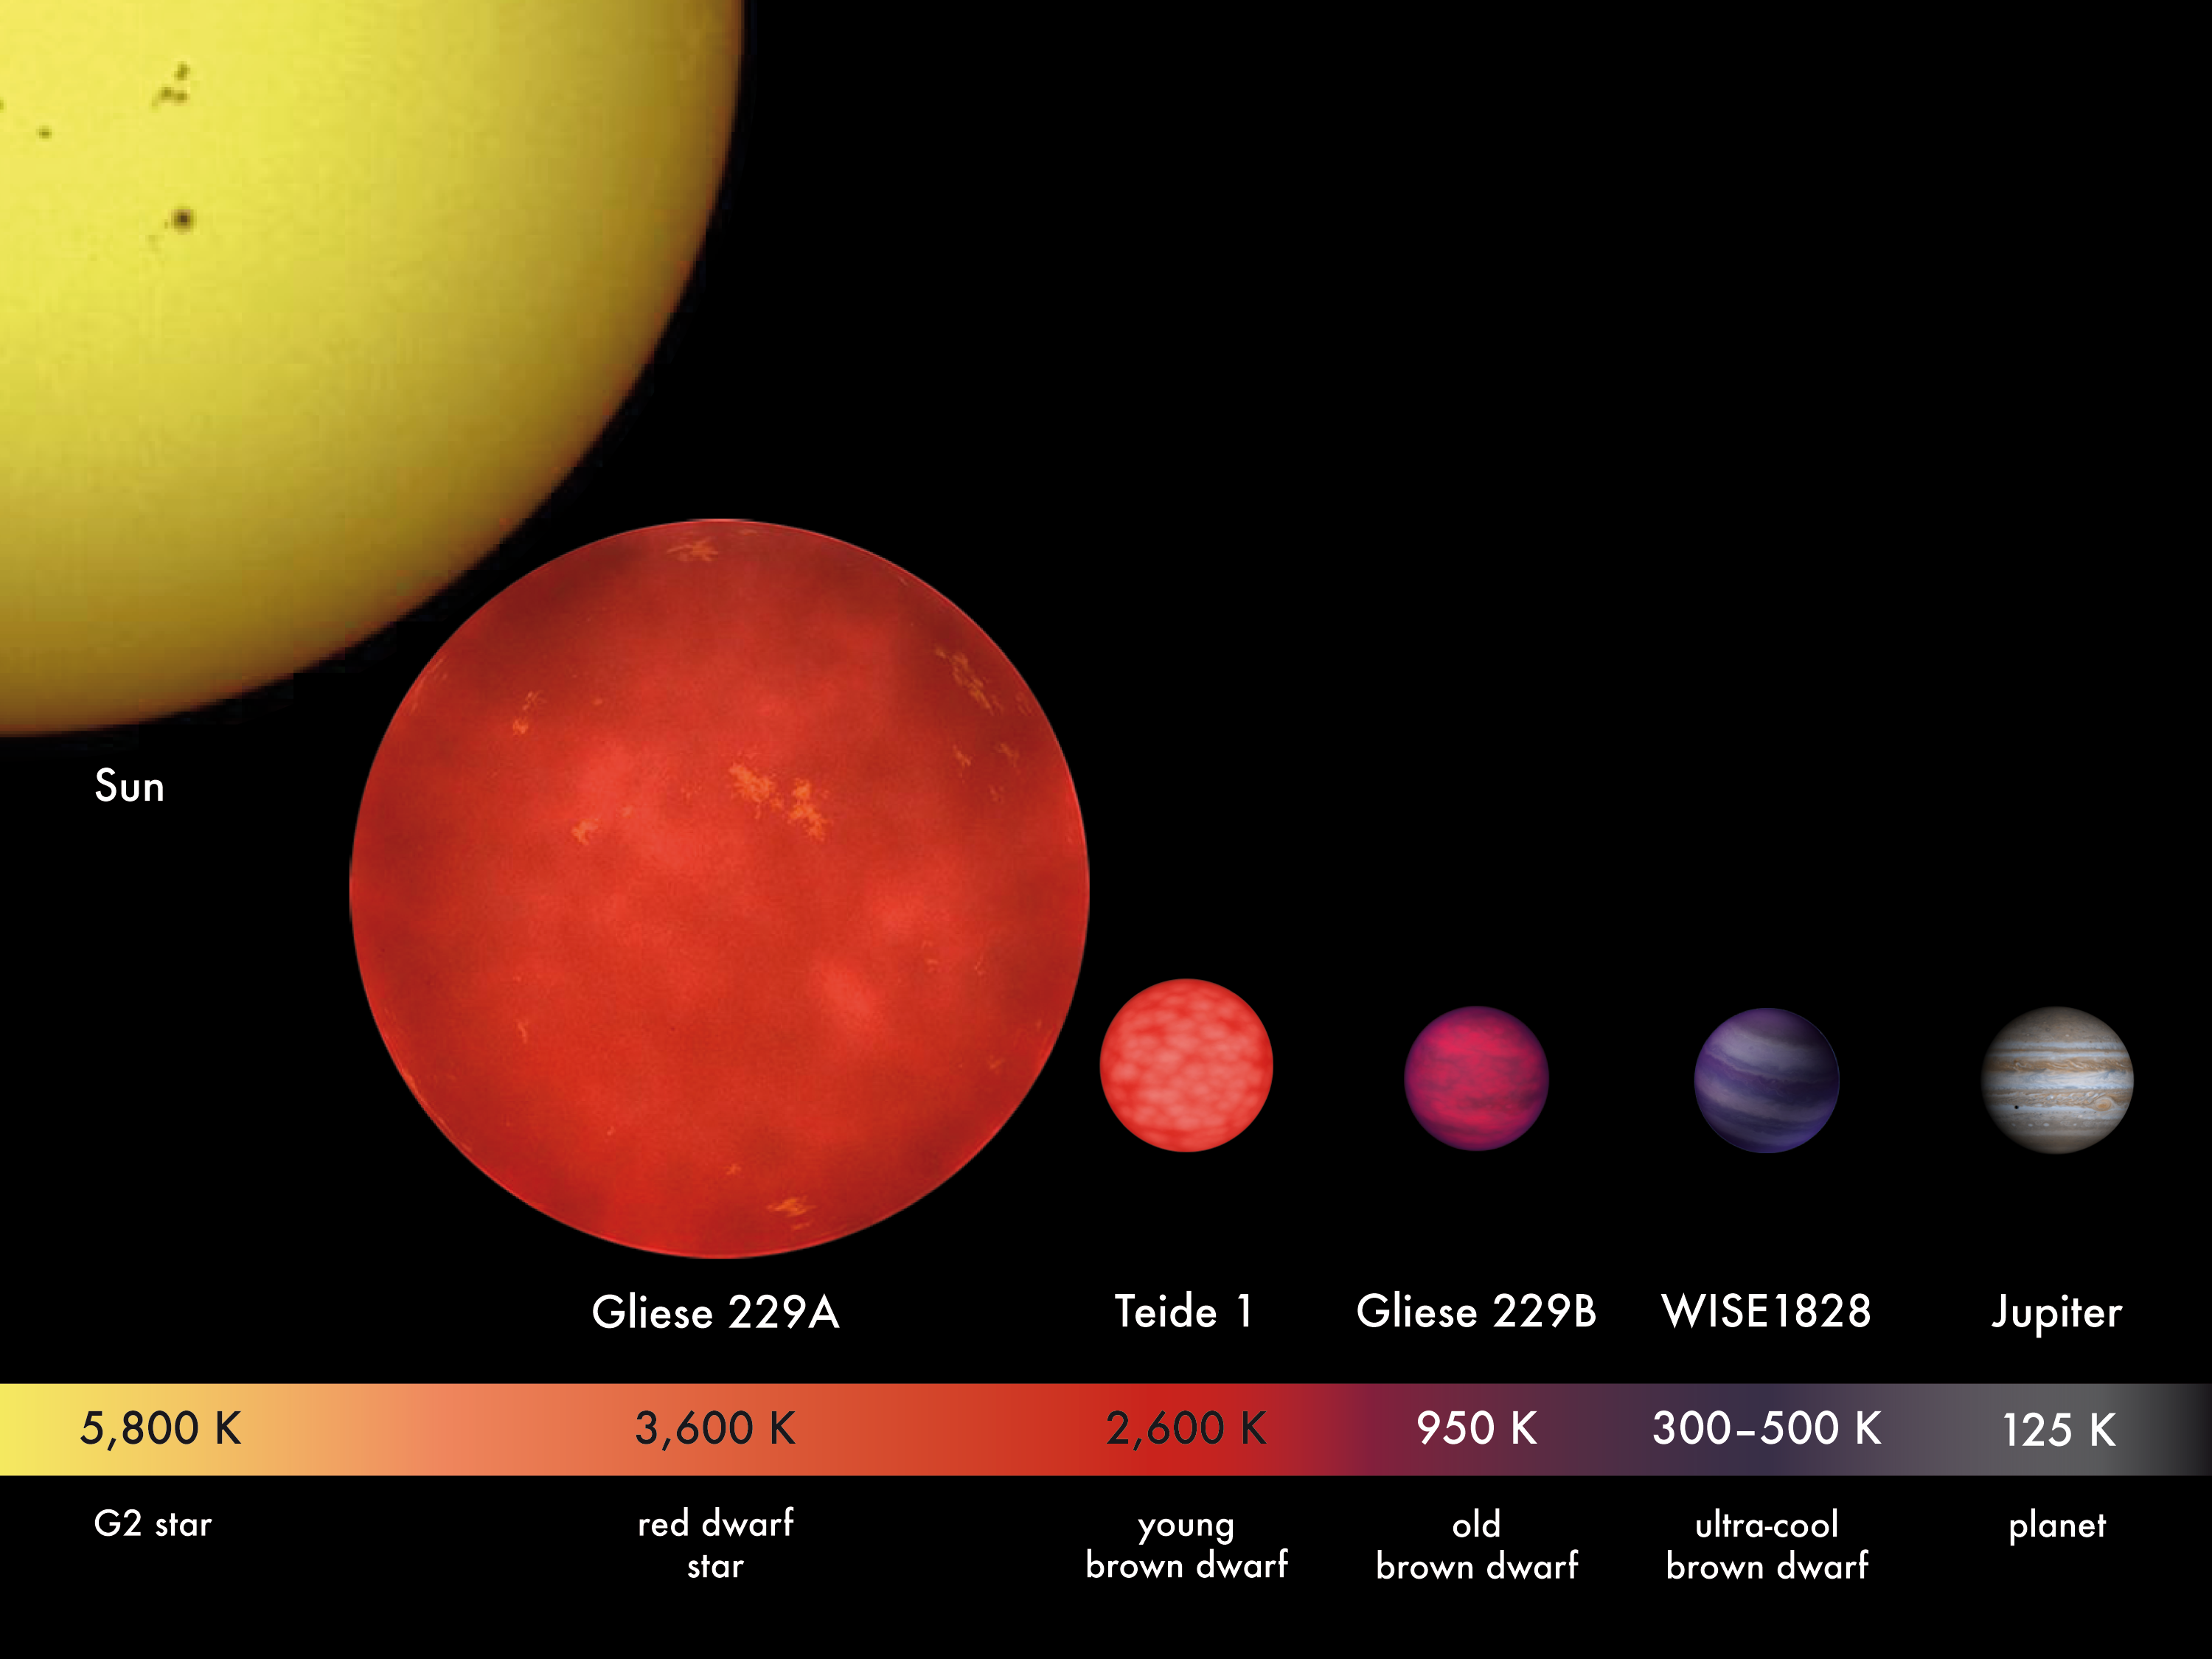 Astronomers are freaking out over this newly discovered Earth-sized planet — and for good reason